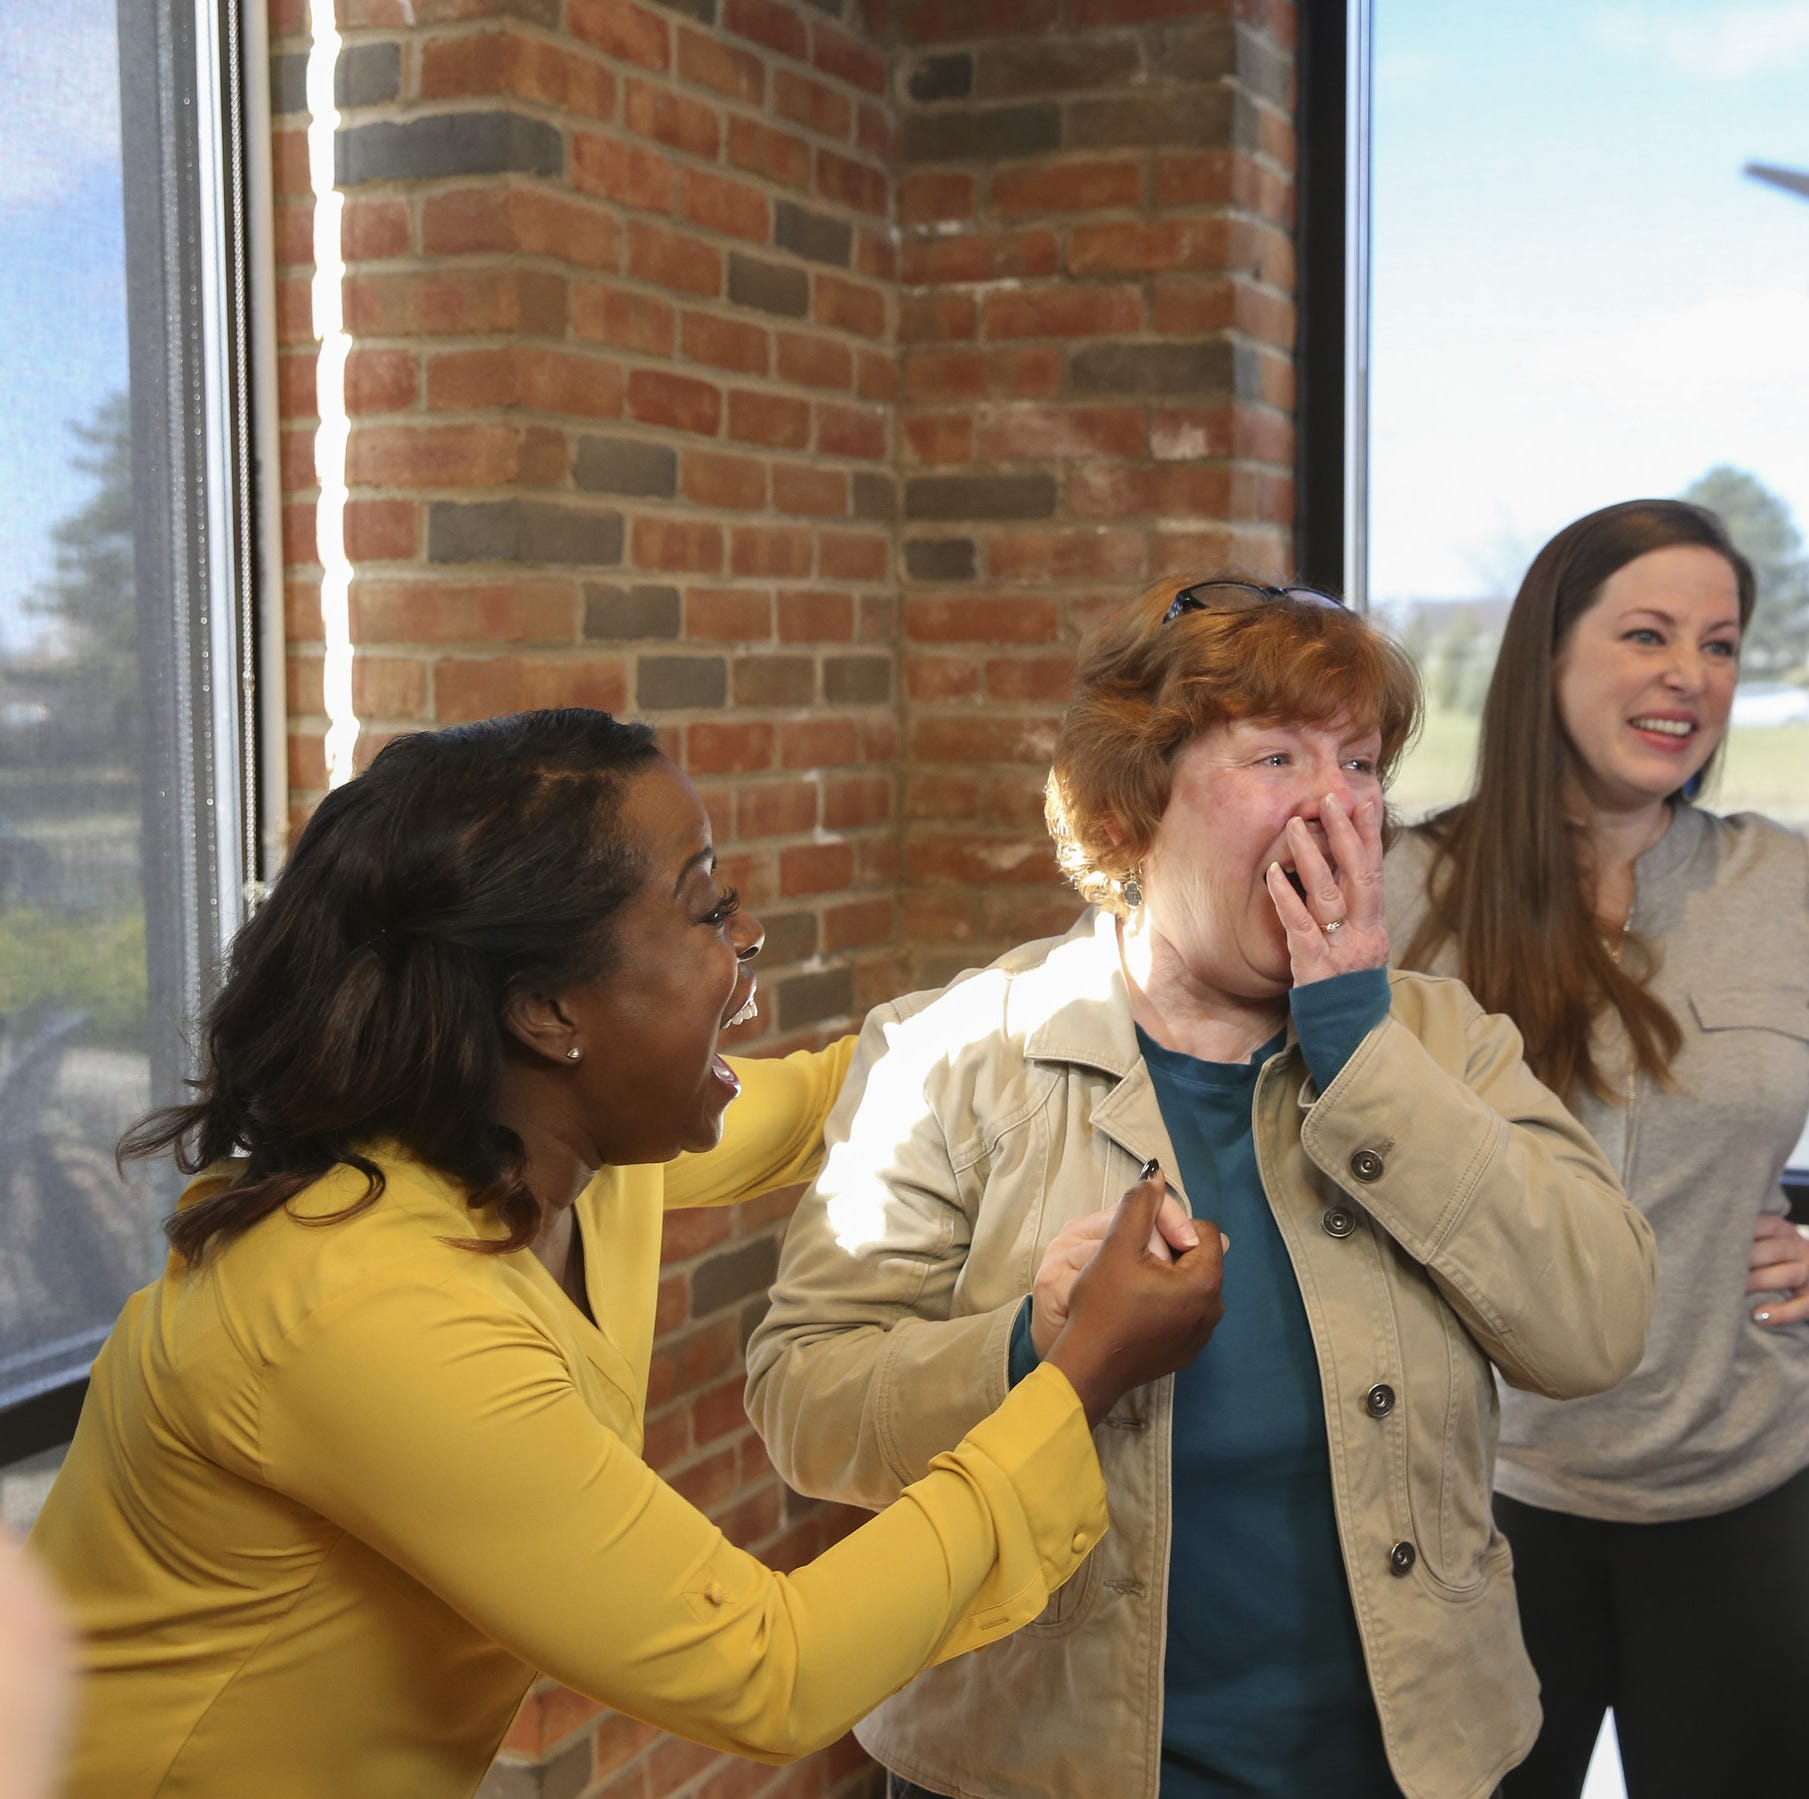 Indiana woman wins Montana home in HGTV Dream Home Giveaway